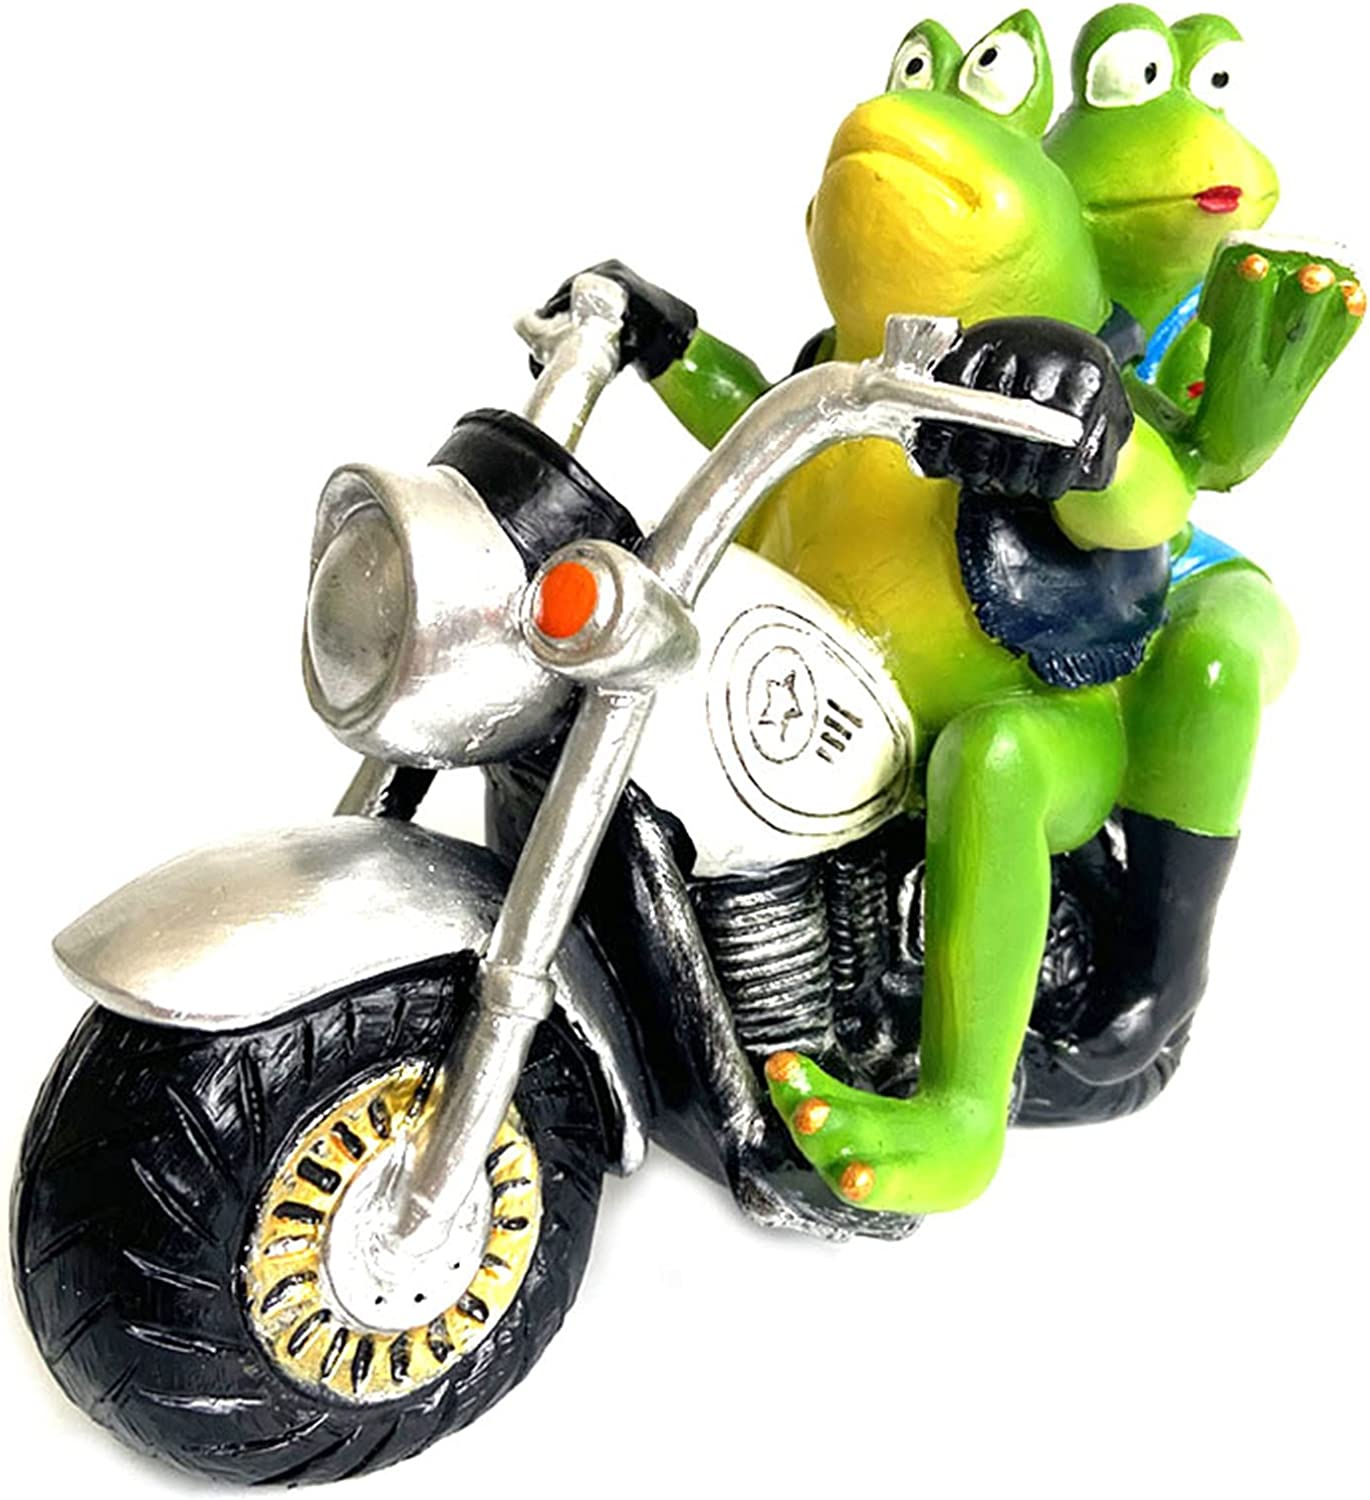 sold out 01SHIRTS Frogs Couple on Motorcycle Resin Statues Orname Desktop NEW before selling